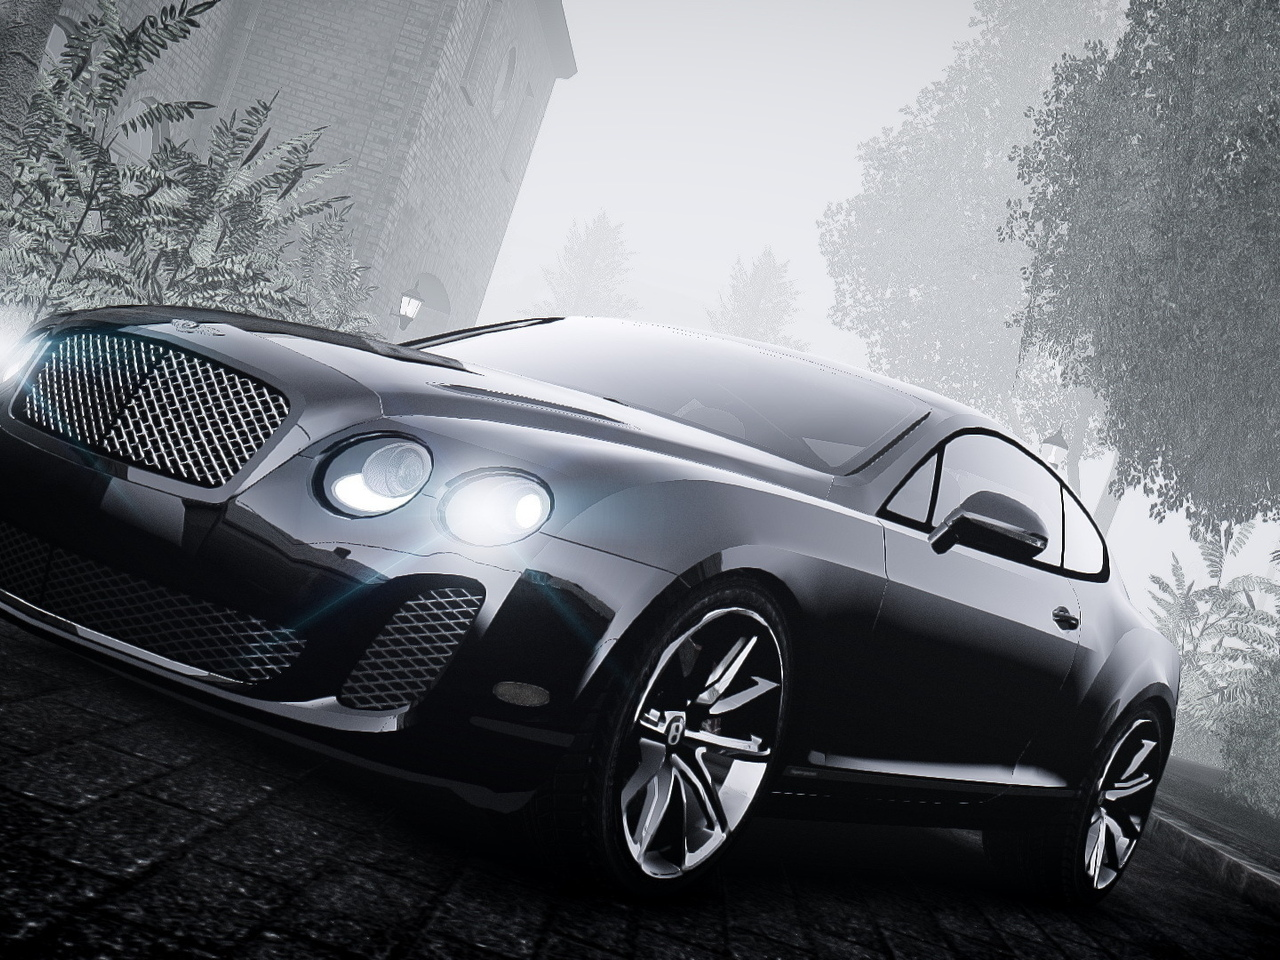 машина, чб, bentley continental, gta 4, туман